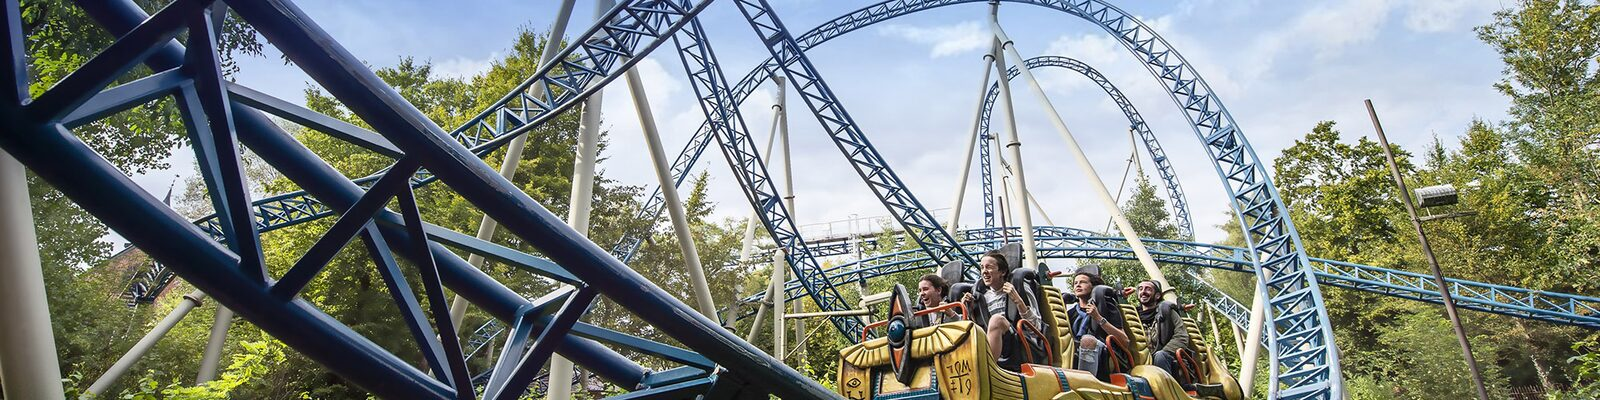 Within 5 kms from Plopsaland La Panne